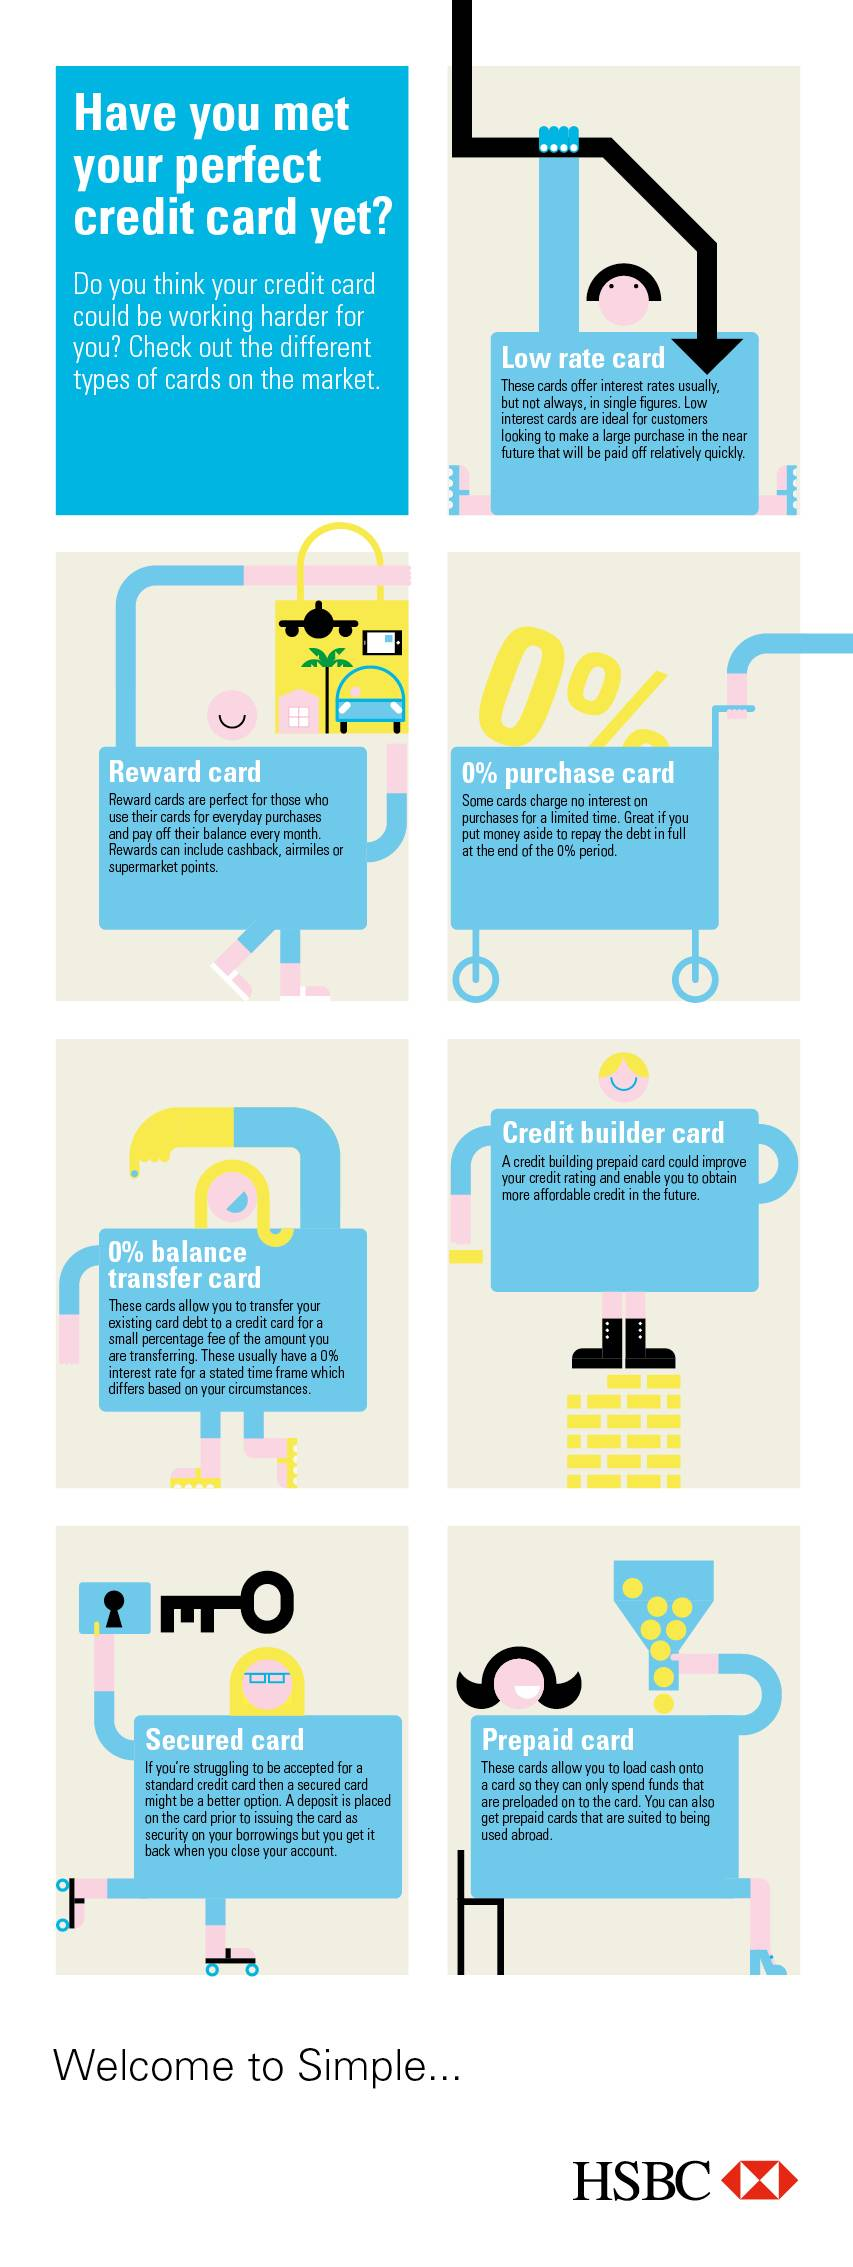 What's the perfect credit card for you?